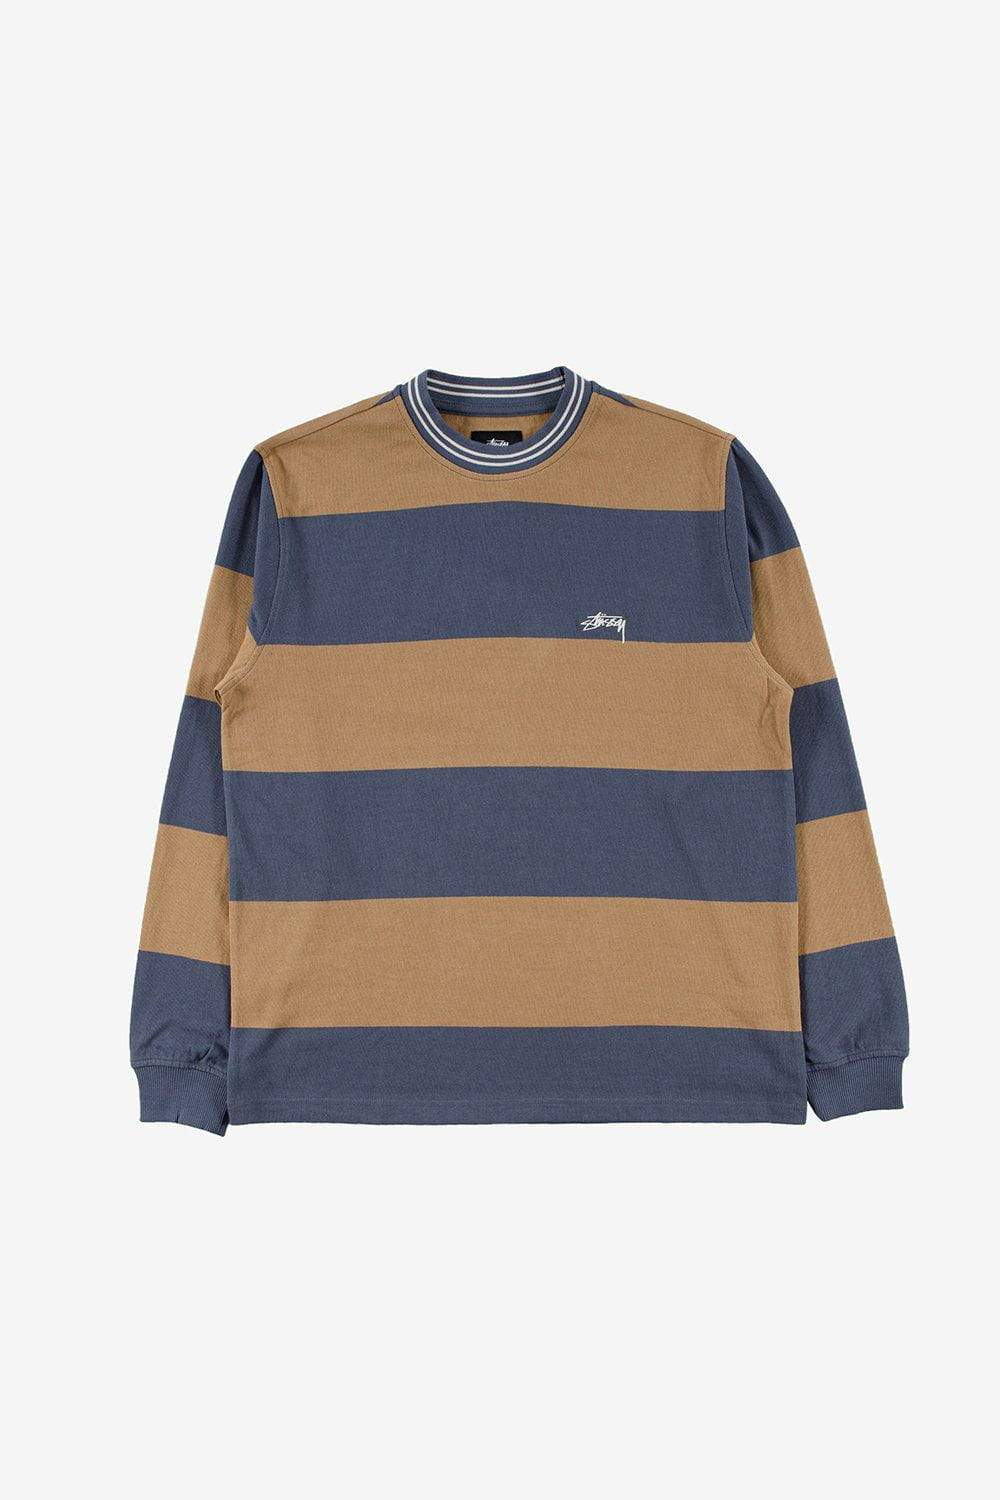 Stussy Apparel Moore Stripe Long Sleeve Tee